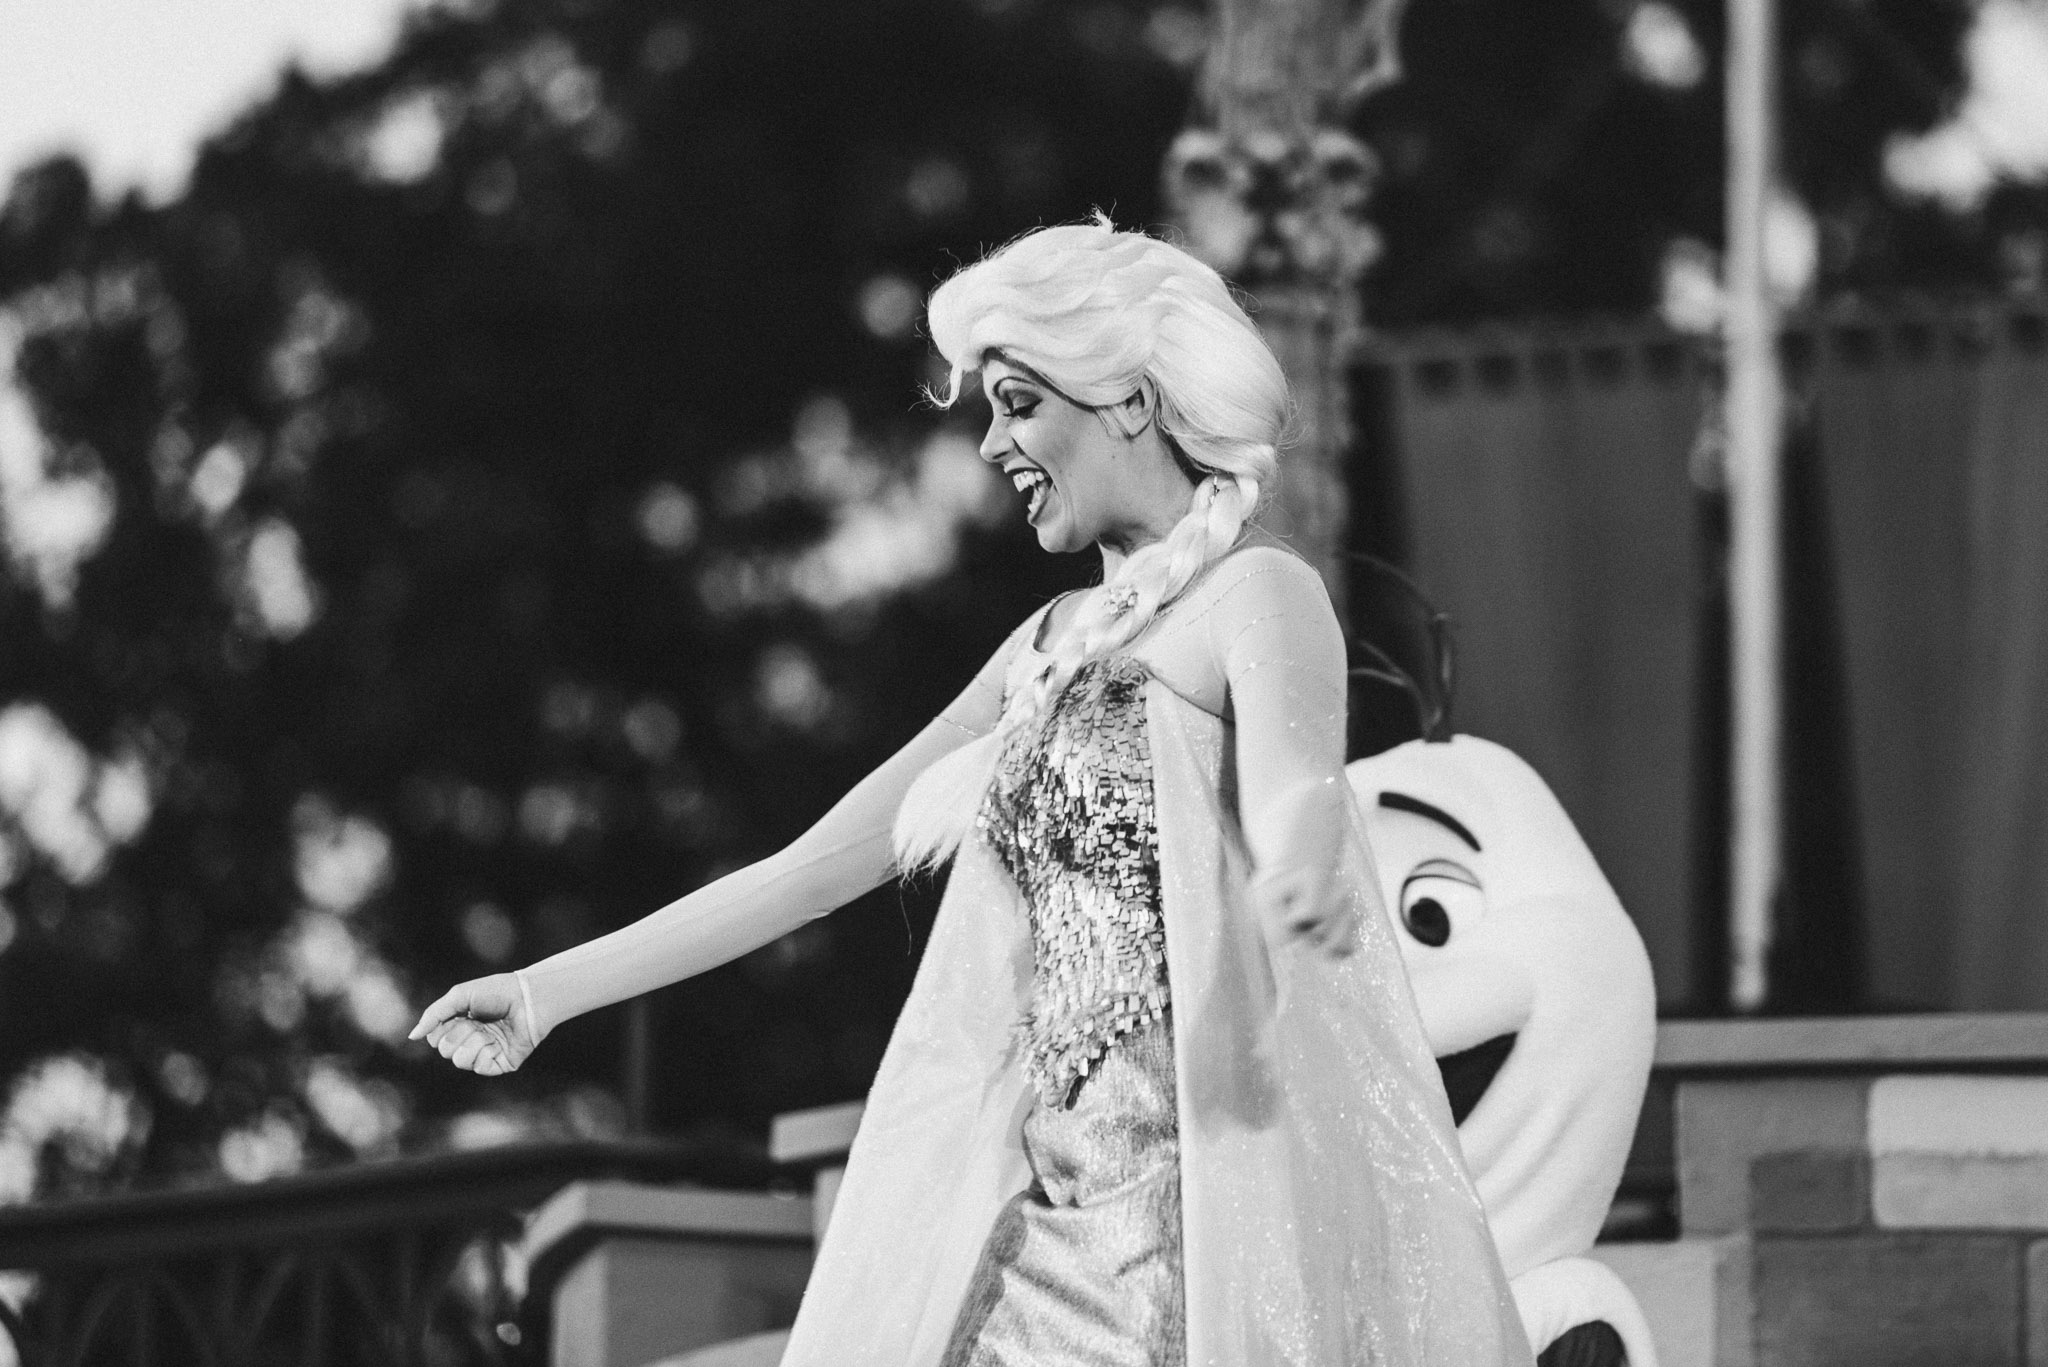 KateTaramykinStudios-Disney-World-Photographer-Dec-2016-7.jpg